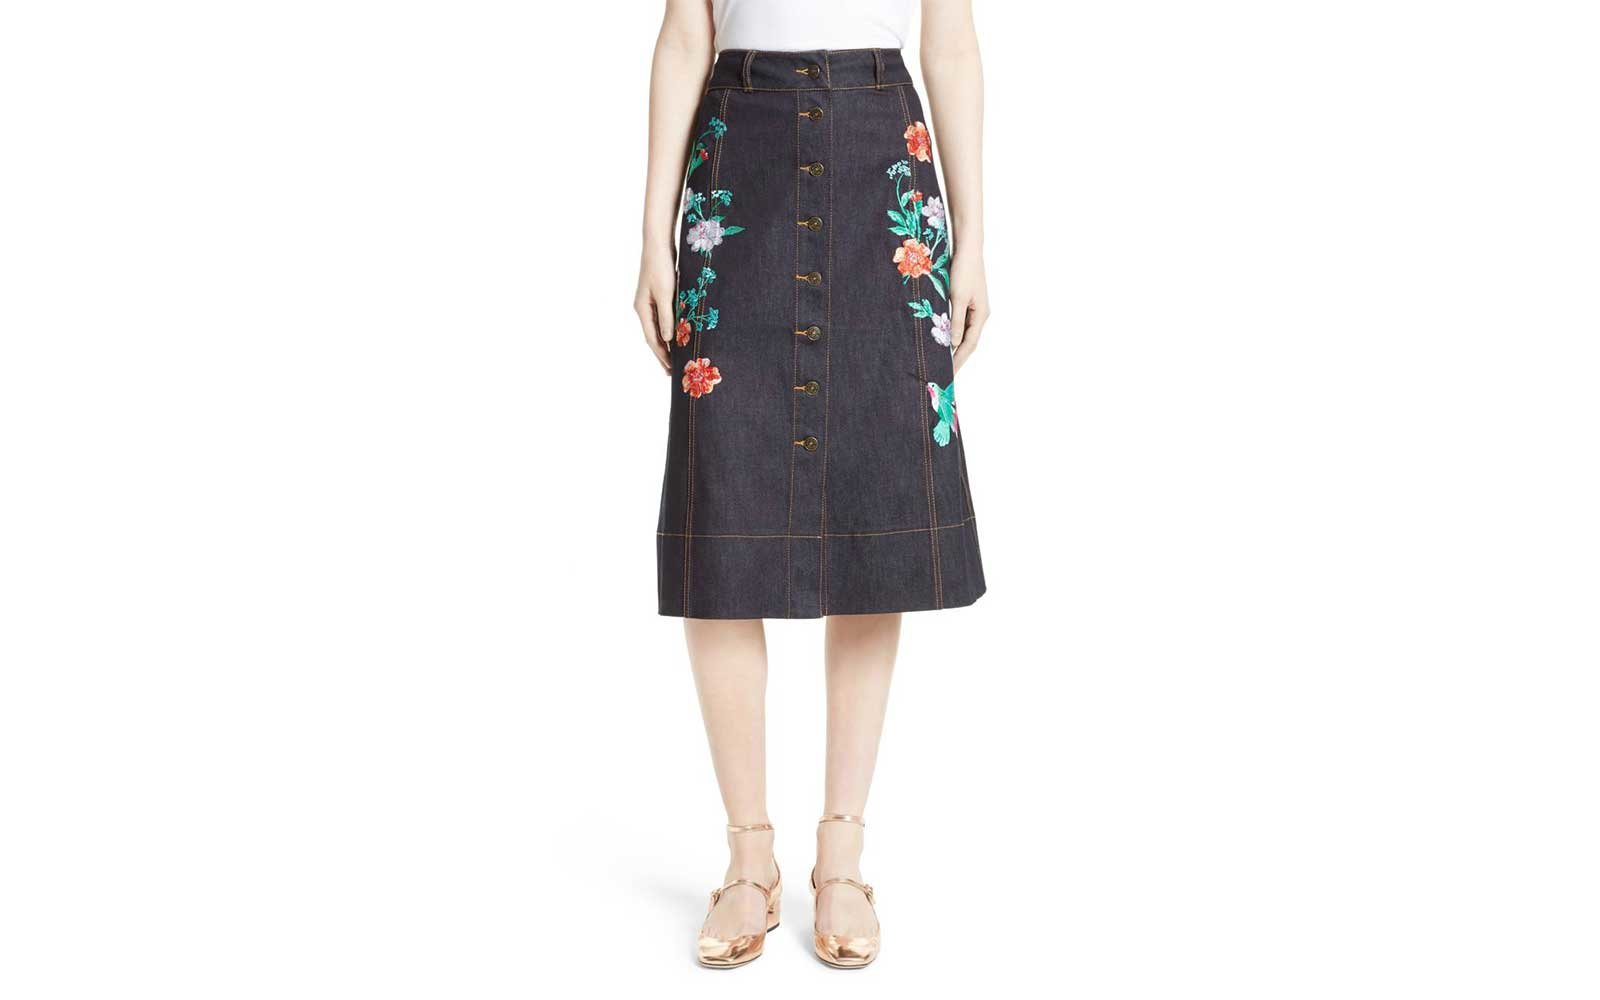 Flower Denim Skirt Kate Spade